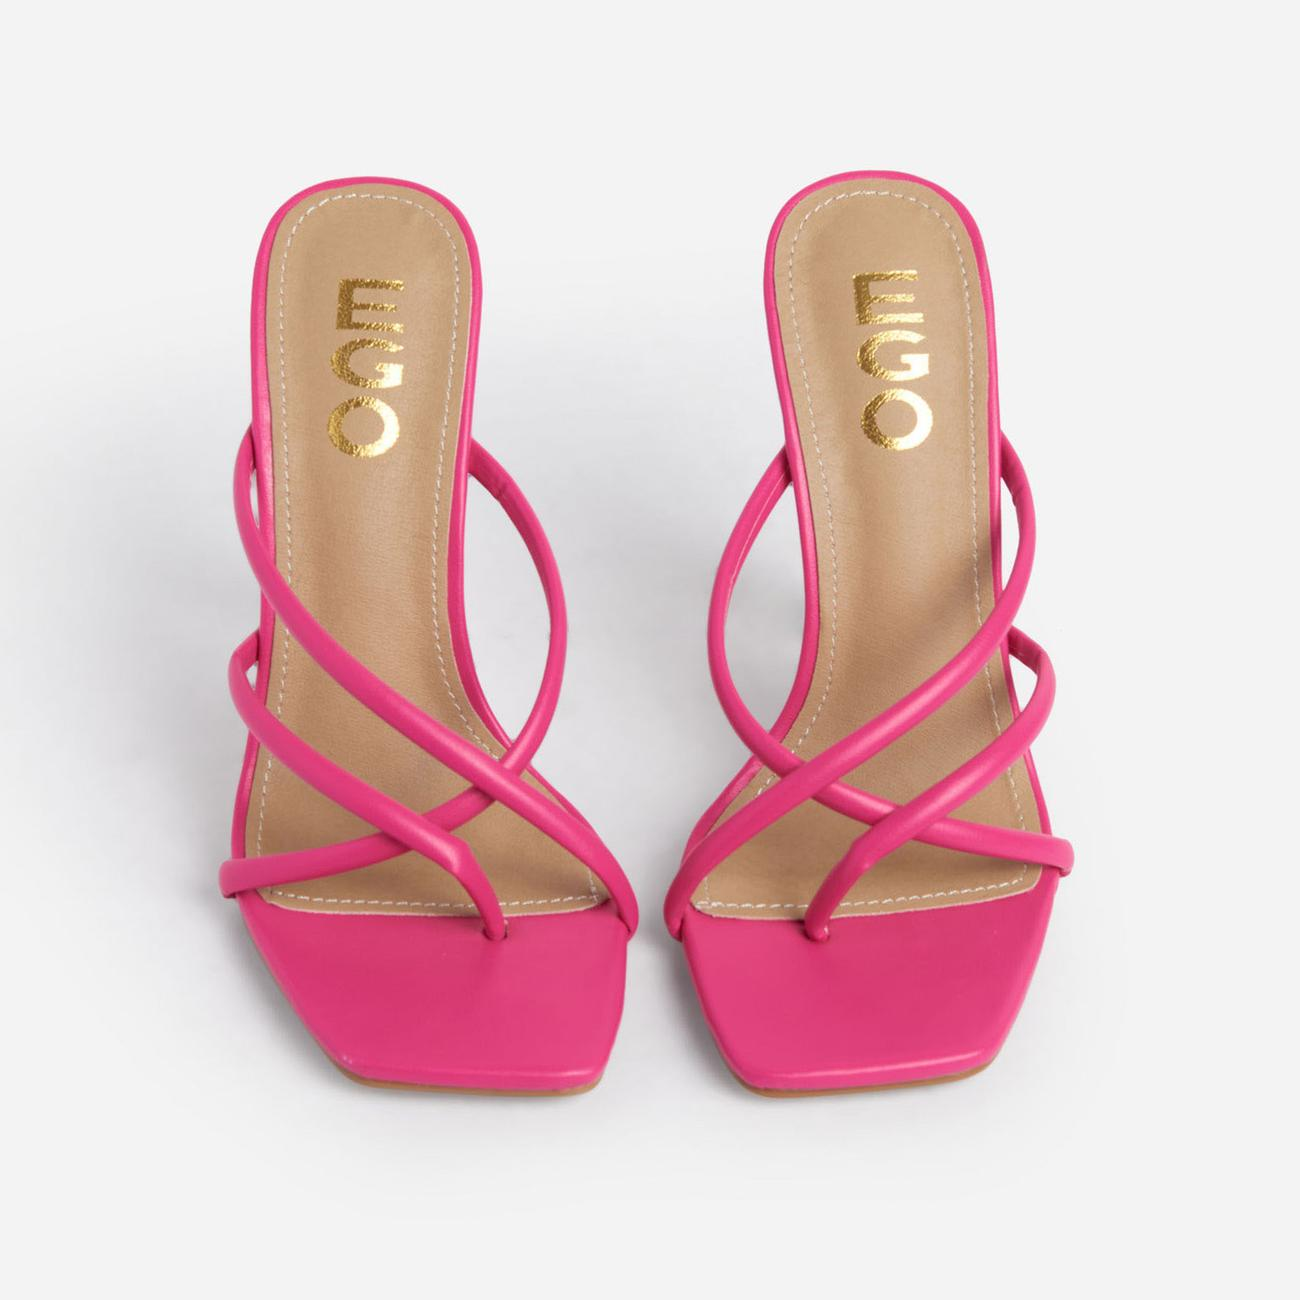 Playa Strappy Square Toe Heel Mule In Pink Faux Leather Image 4